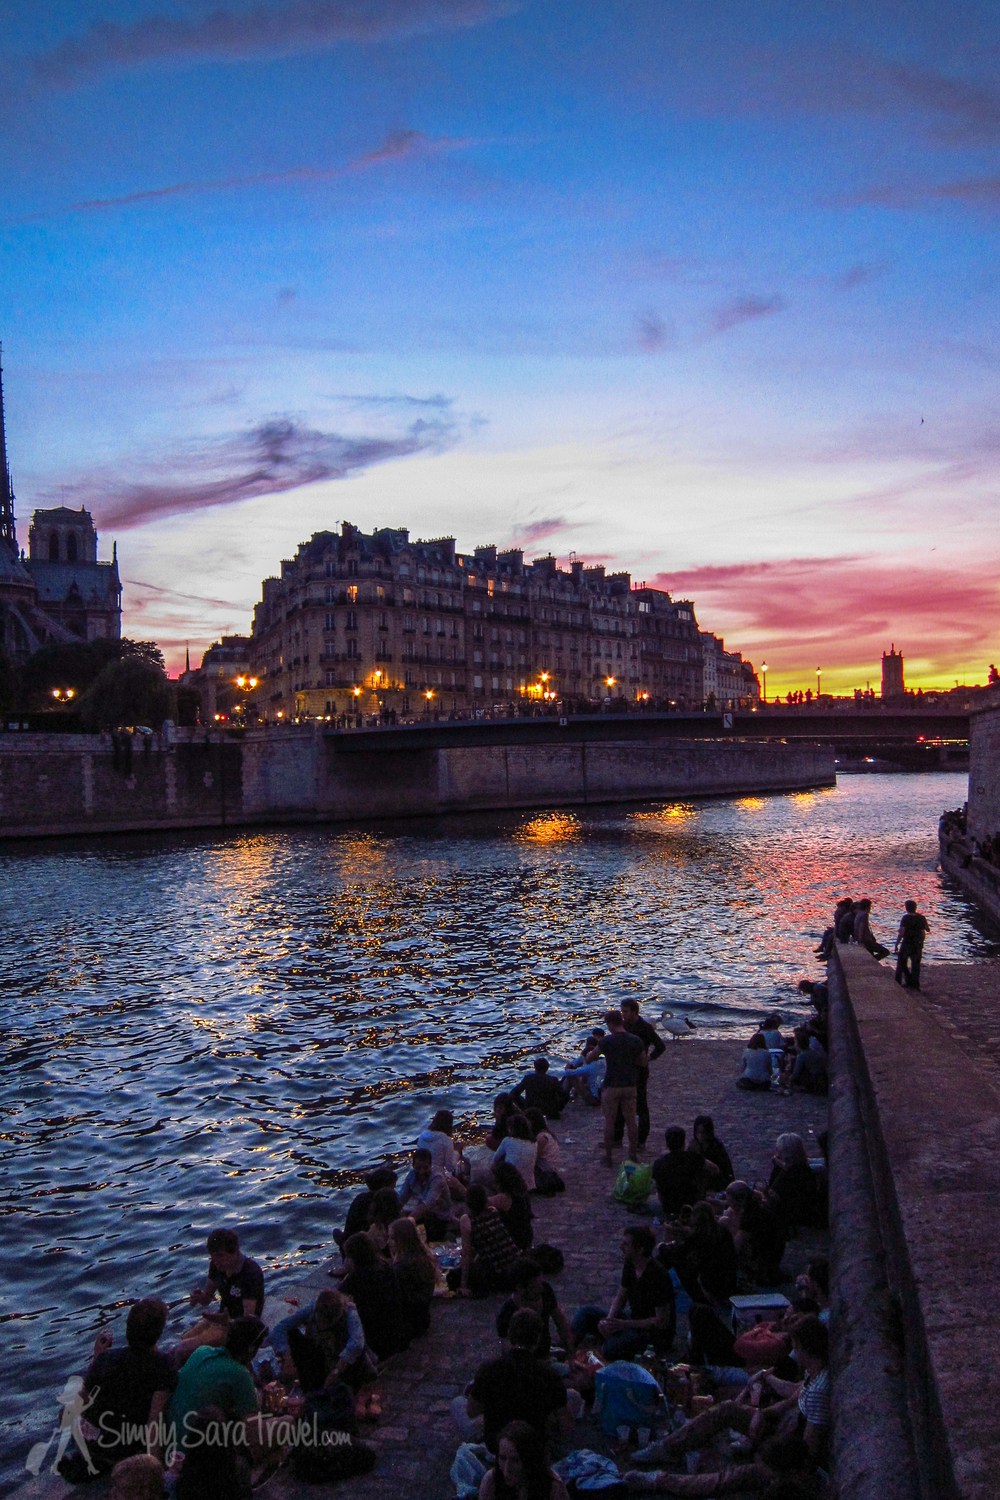 Sunset on the Quai of Ile Saint-Louis